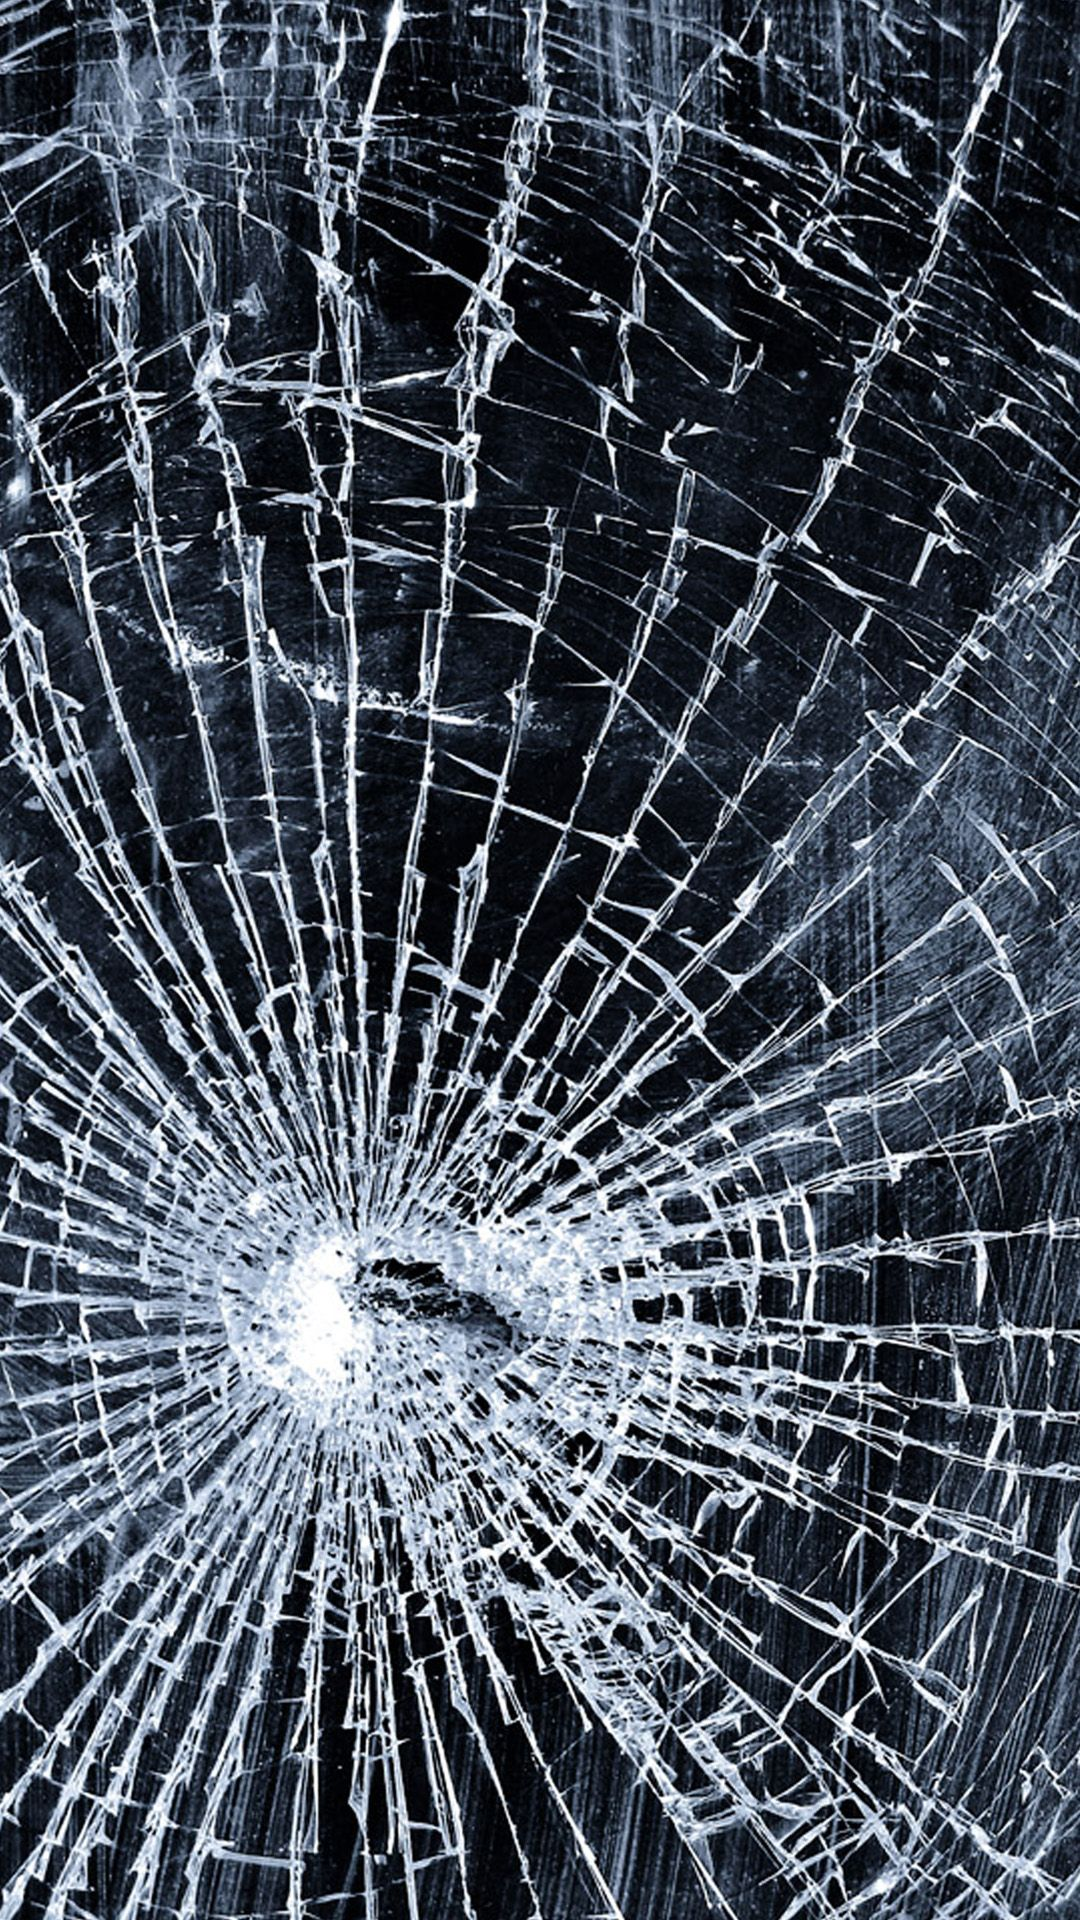 Cracked Screen Wallpaper HD | Wallpapers in 2019 | Phone screen wallpaper, Cracked phone screen ...